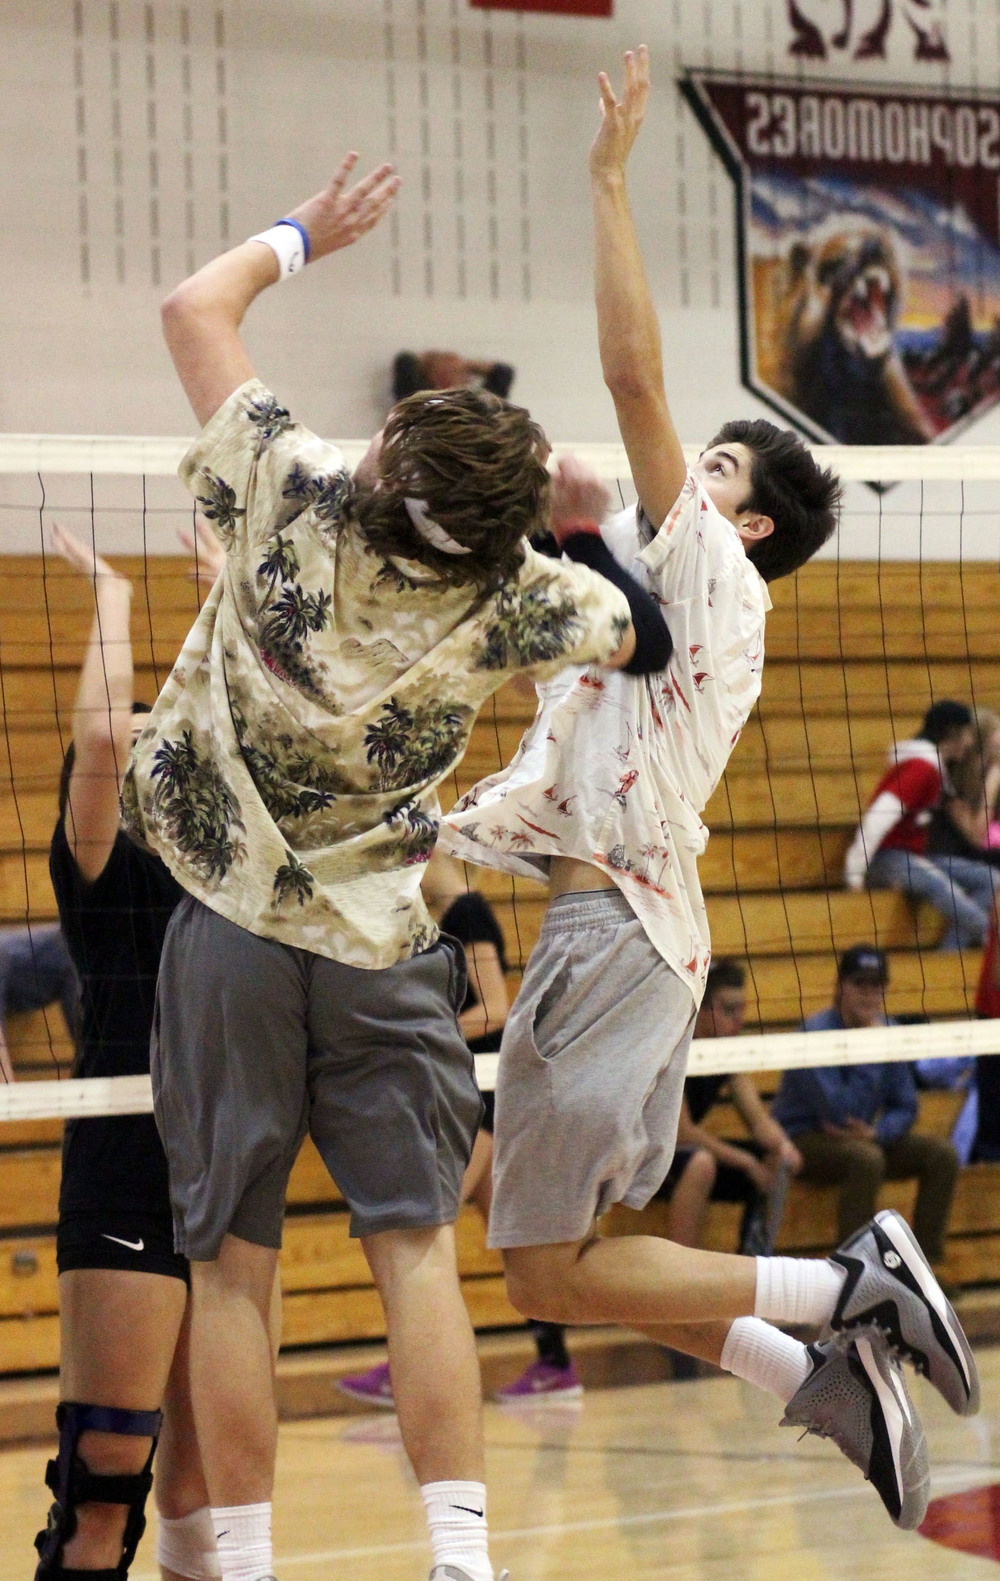 Seniors Connor McIntyre and Caleb Hernandez go up for a ball during the Rough and Tough Volleyball Tournament.